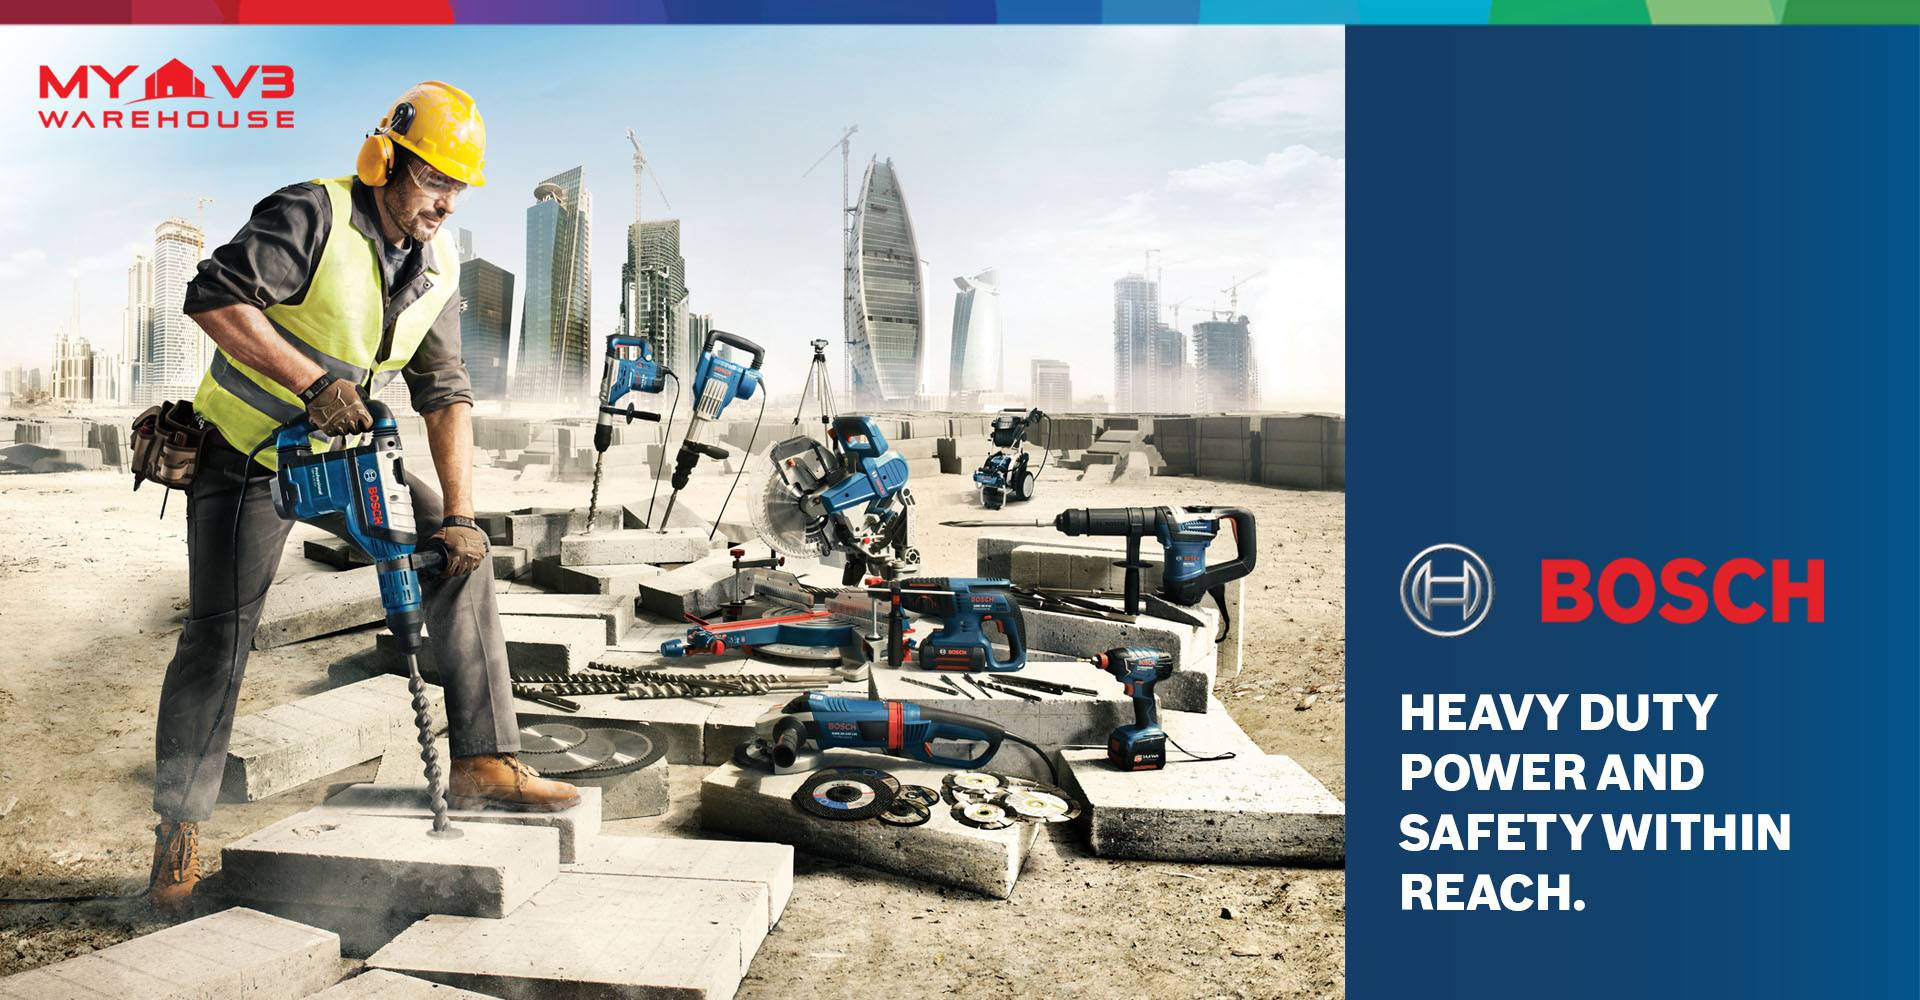 Bosch Heavy Duty Power and Safety